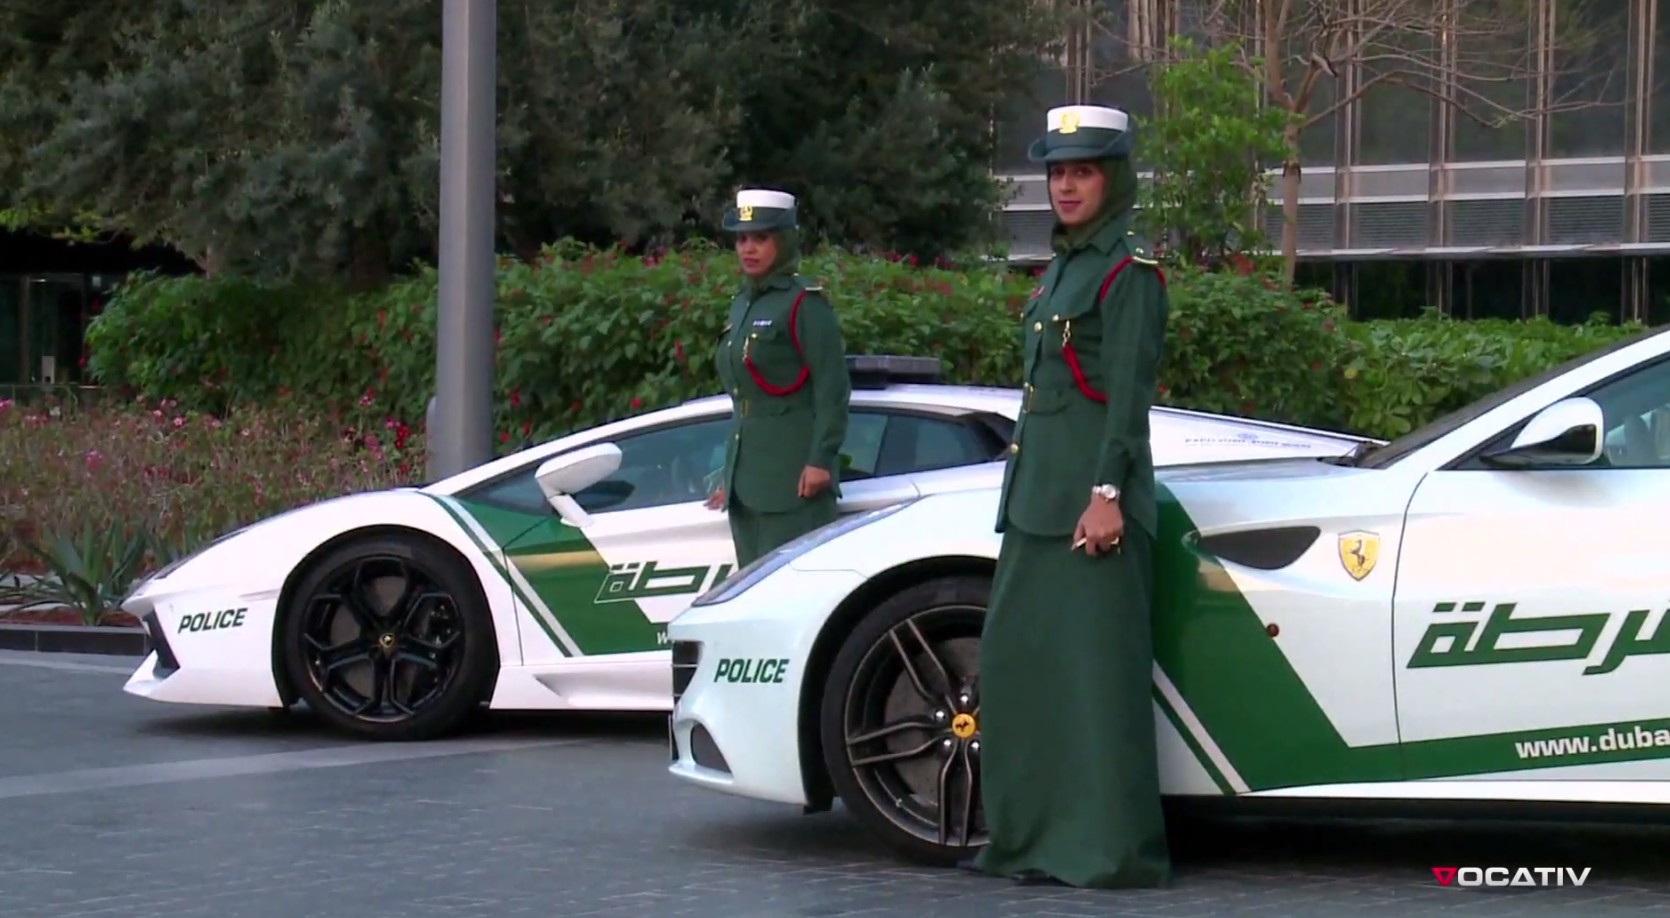 Dubai Police Cars Are The World S Fastest